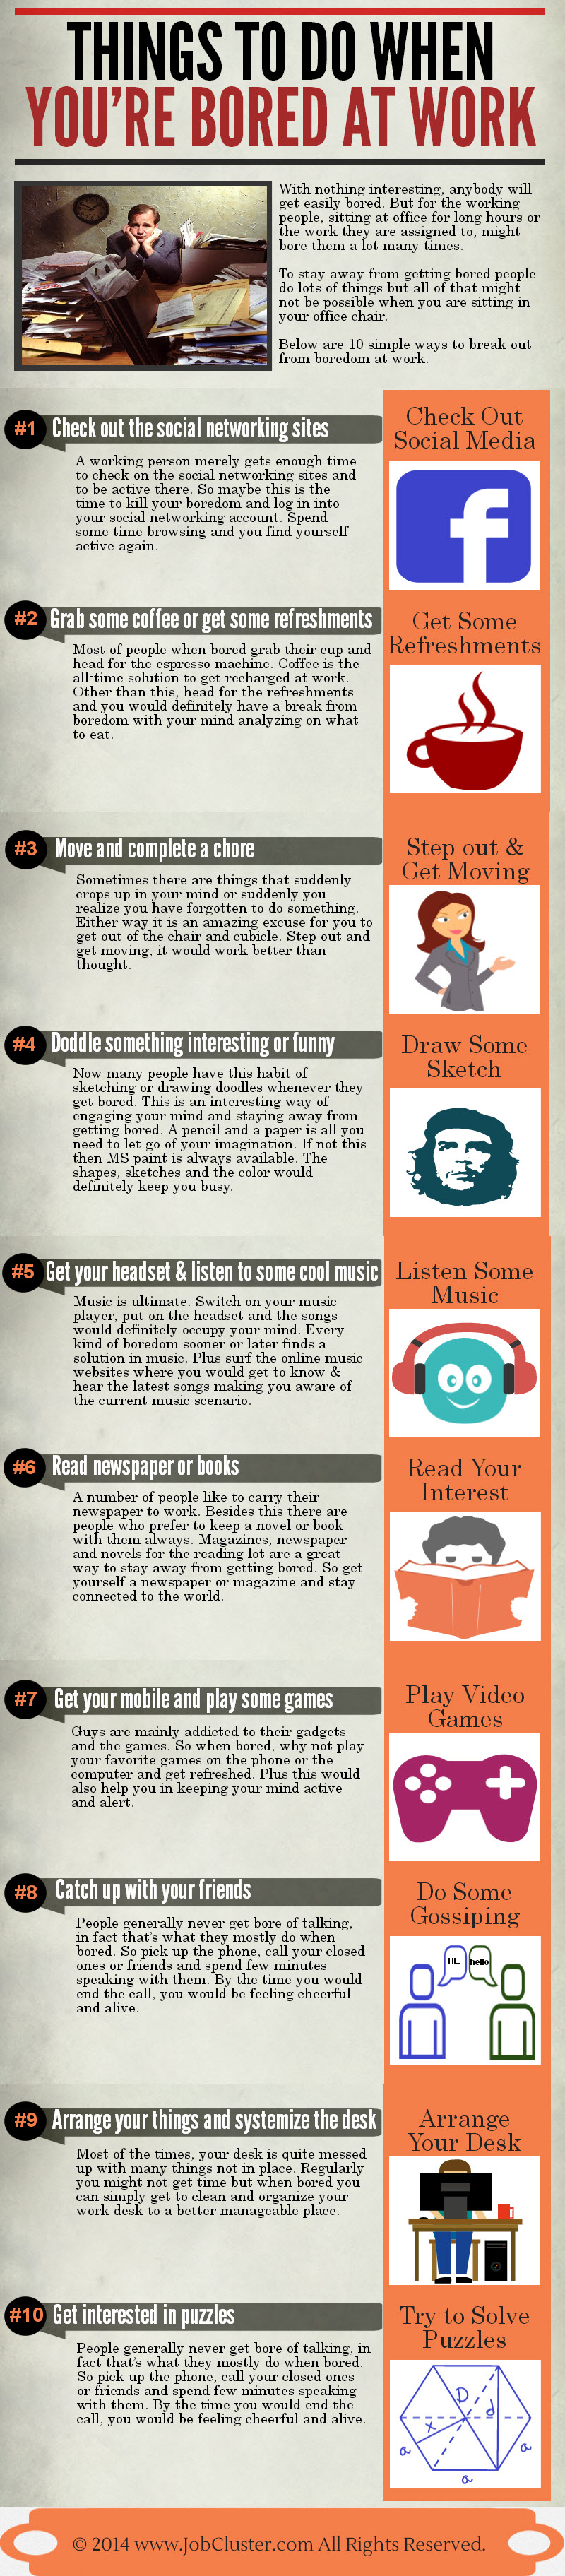 Things to do When you're Bored at Work- Infographic